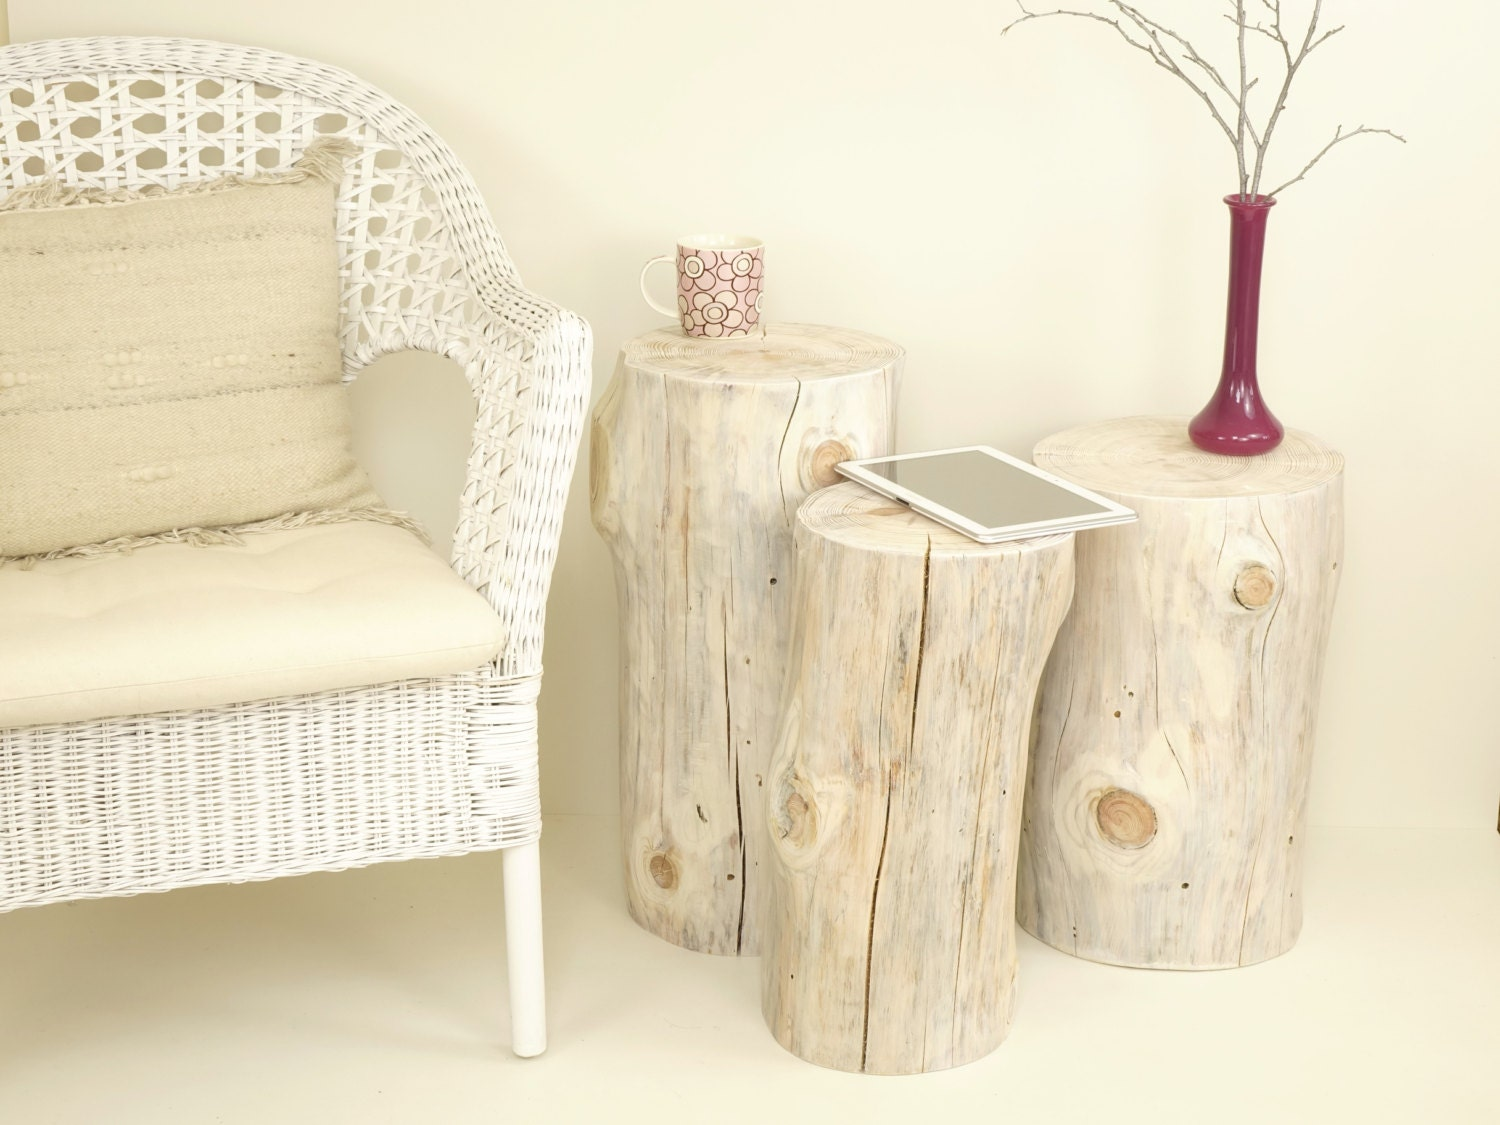 10 off set de 3 blanc souche darbre et table tronc de bois - Tronc arbre decoration interieur ...